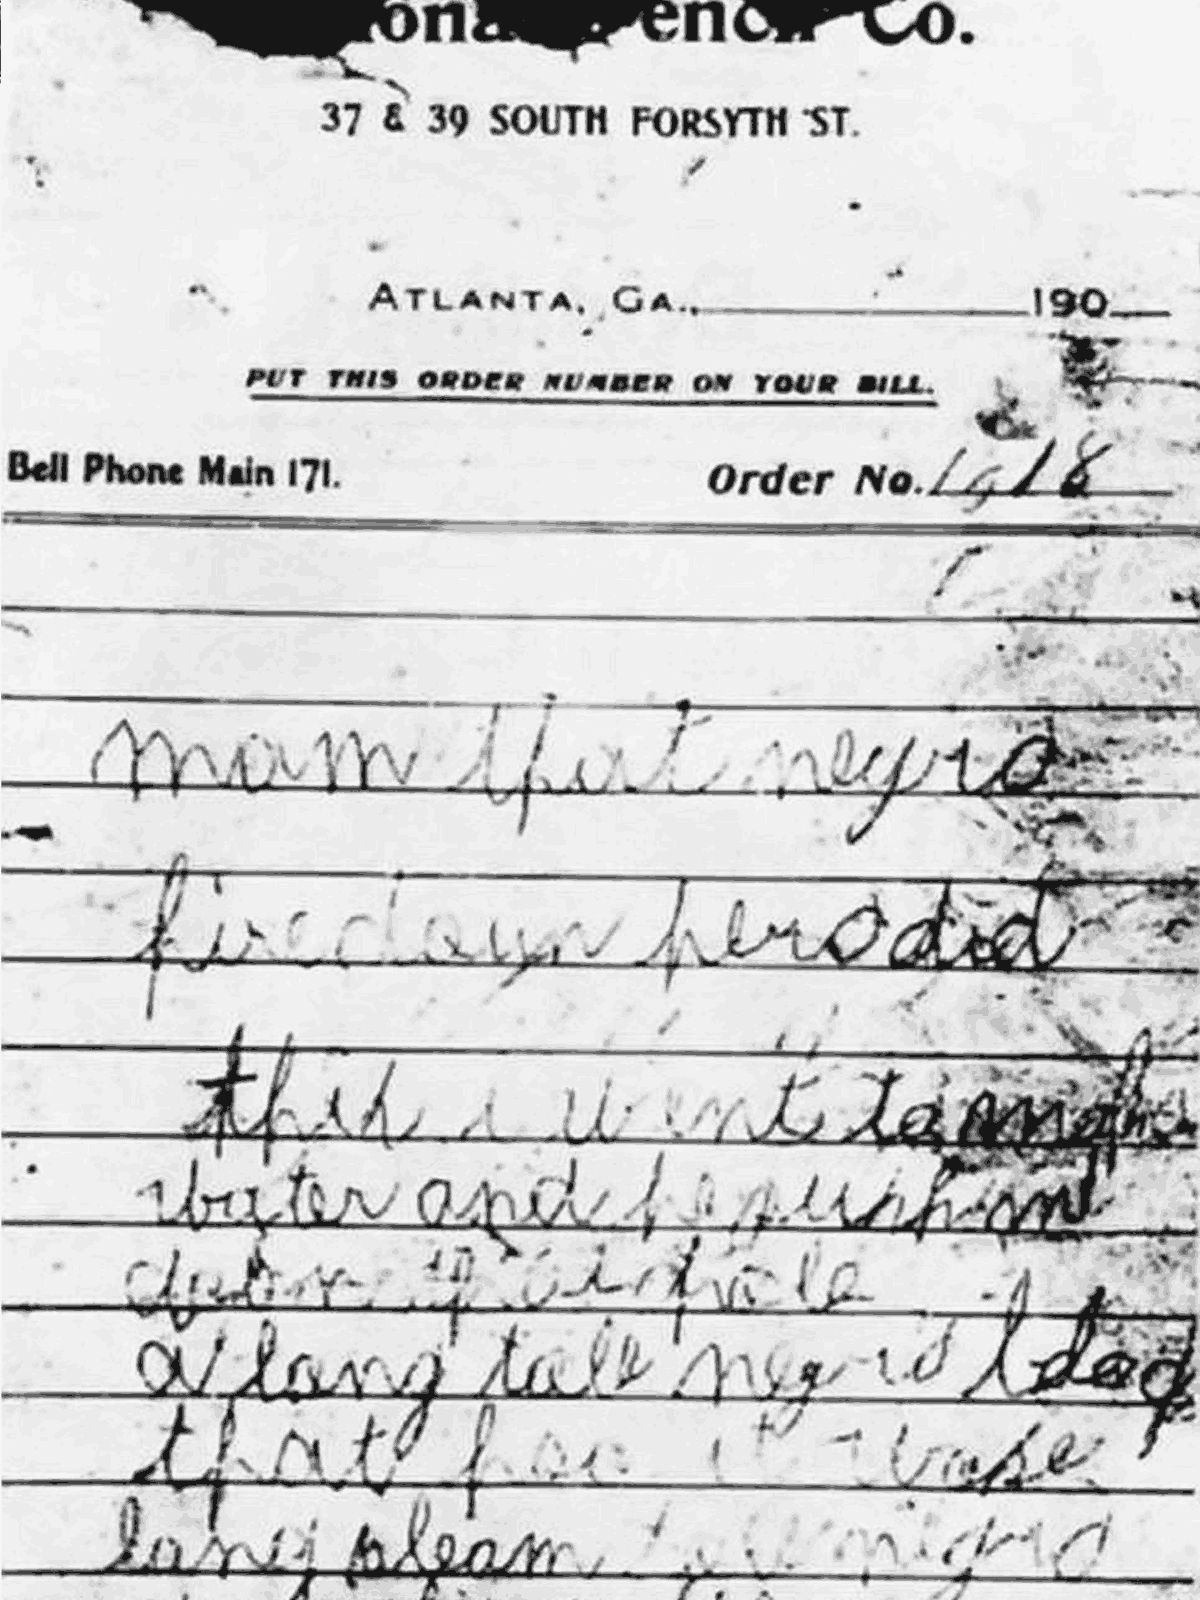 One of the so-called murder notes found near Mary Phagan